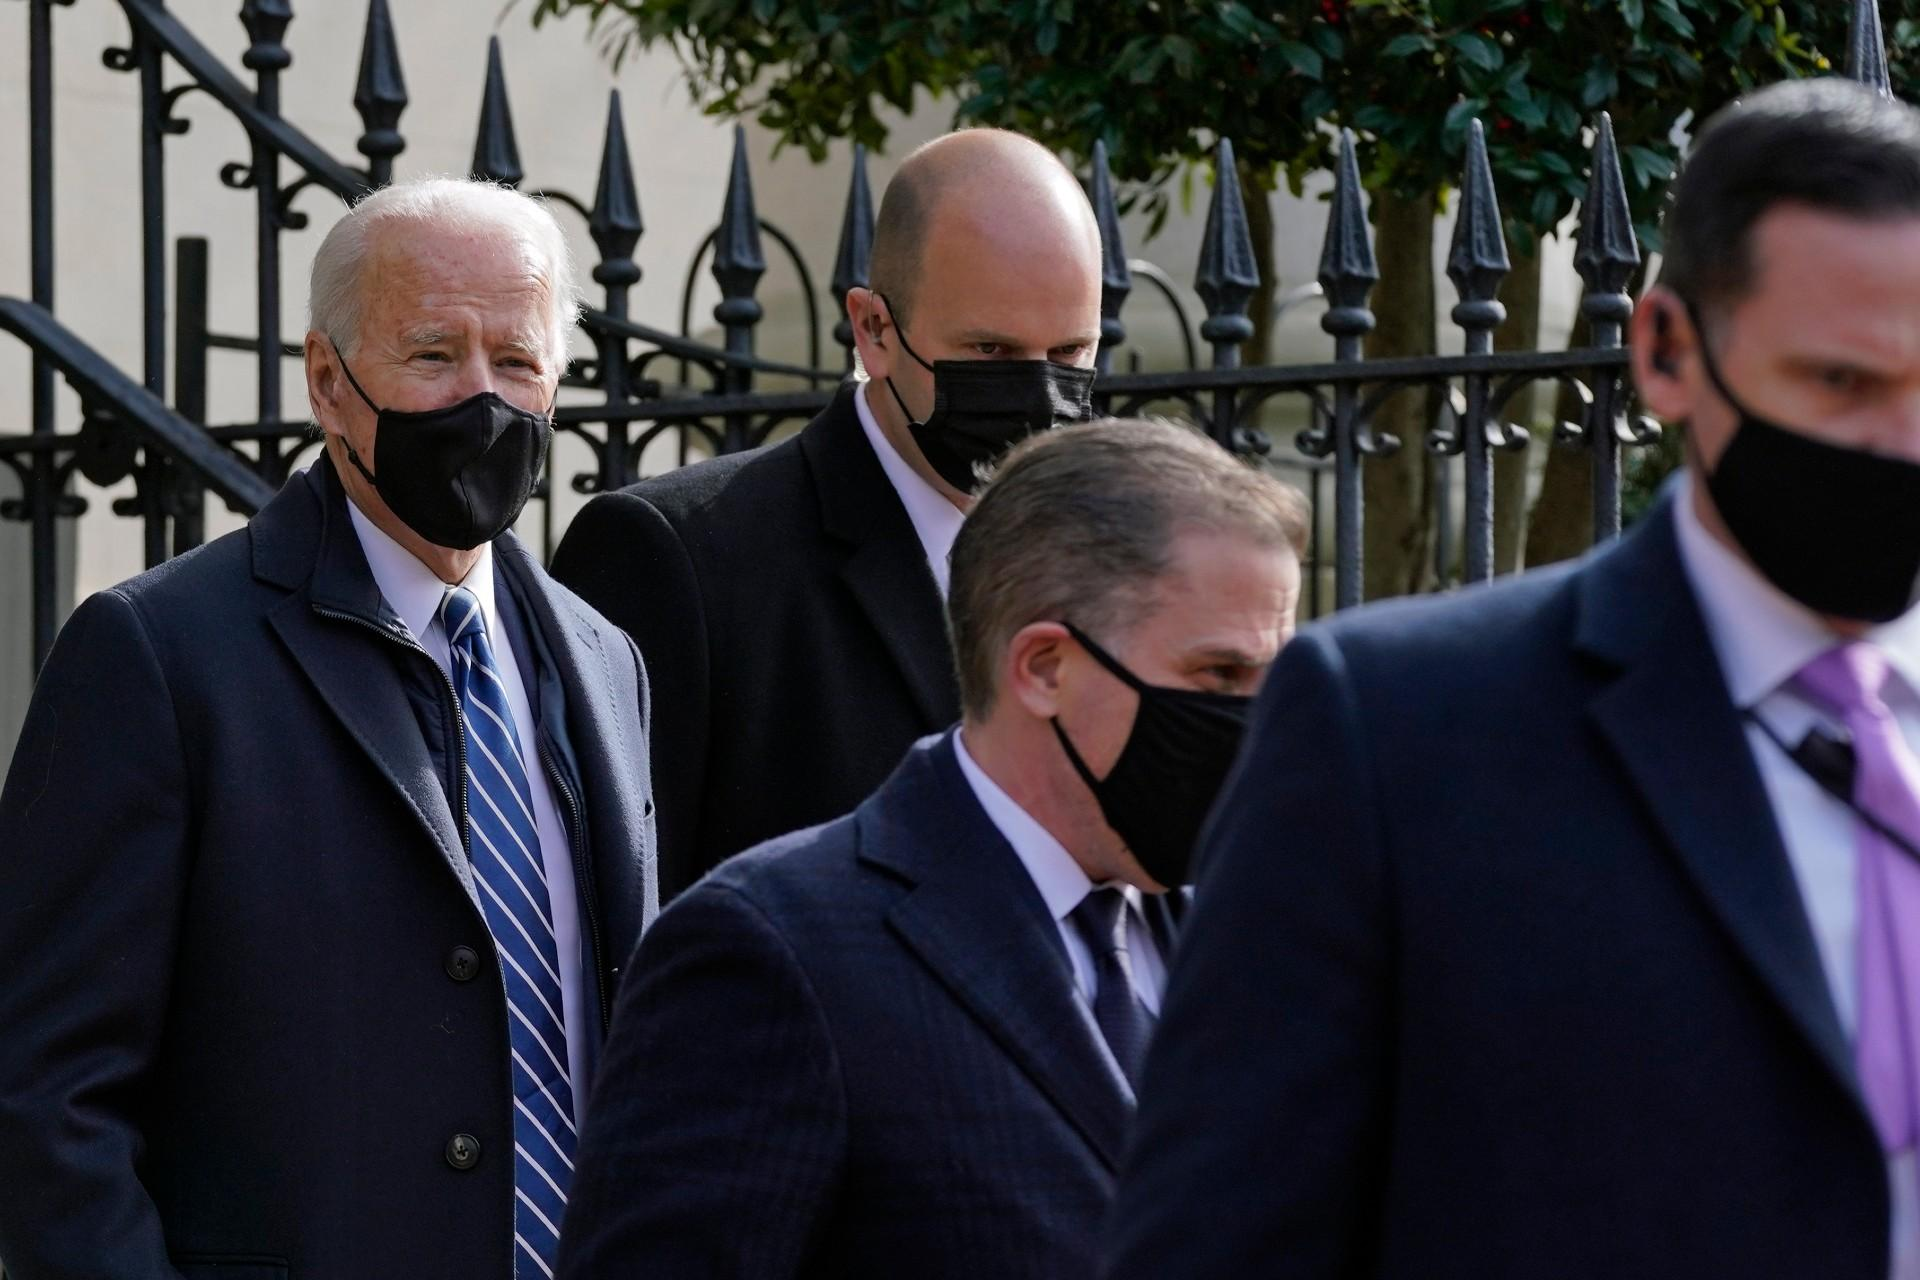 President Joe Biden departs after attending mass at Holy Trinity Catholic Church, Sunday, Jan. 24, 2021, in the Georgetown neighborhood of Washington. (AP Photo / Patrick Semansky)